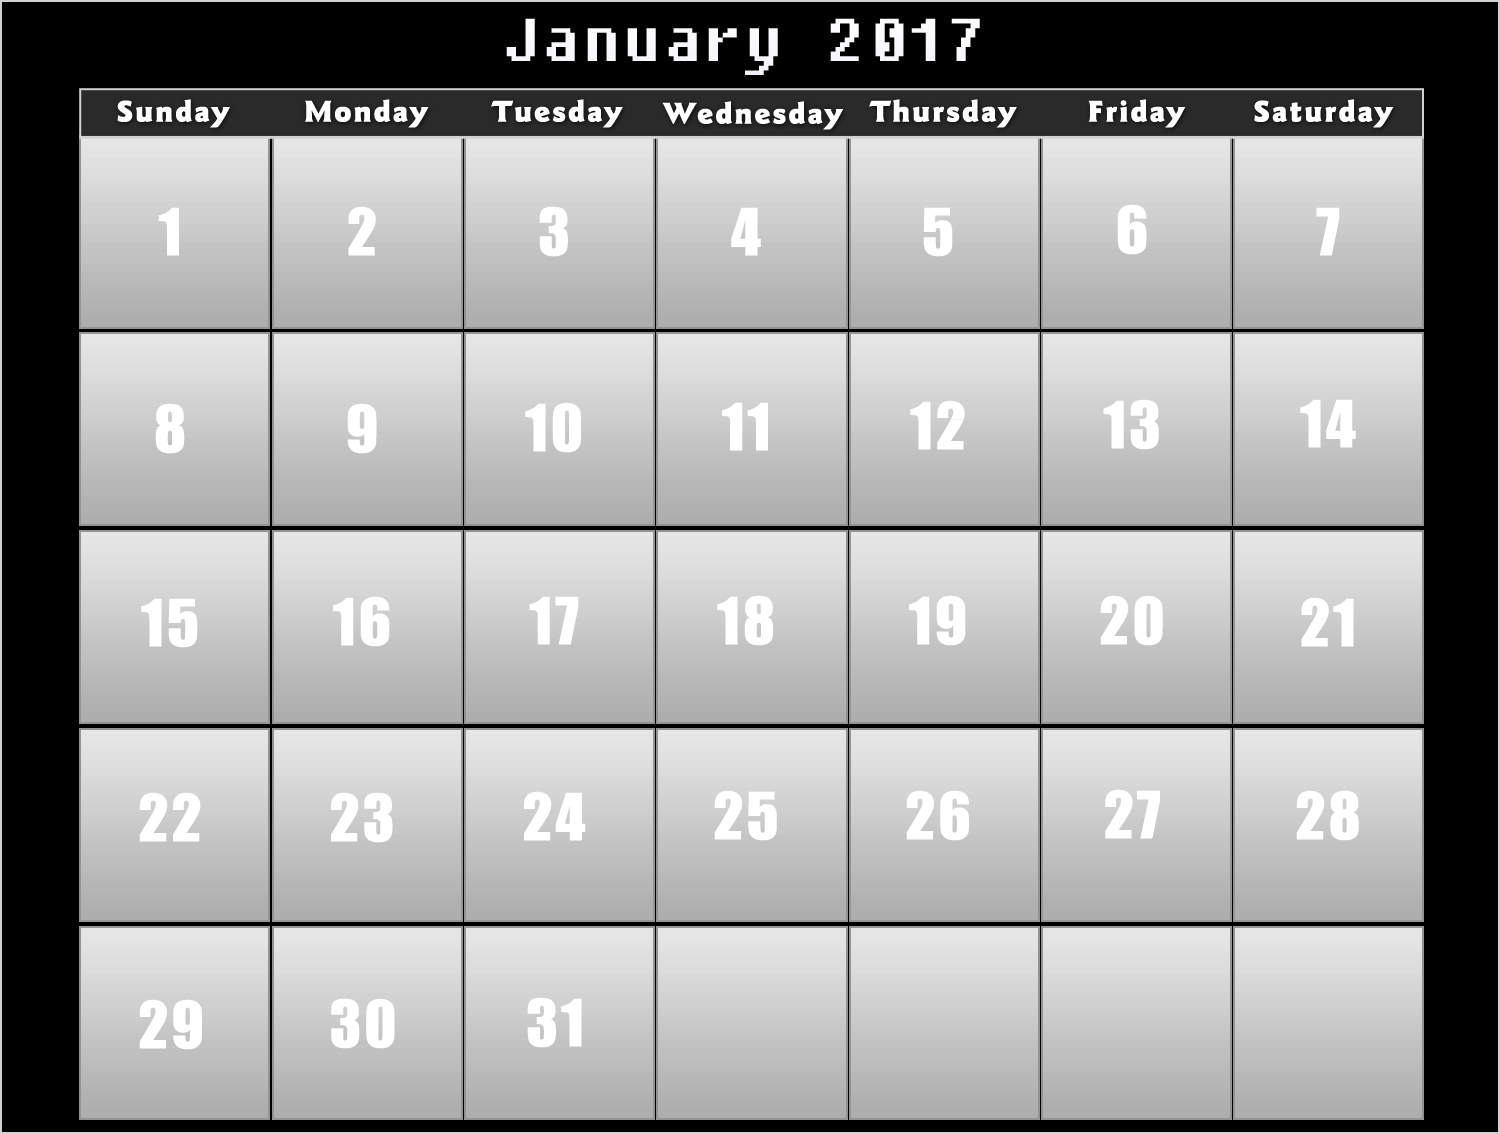 Calendar 2017 – Download Printable calendars of 2017 for free and ...